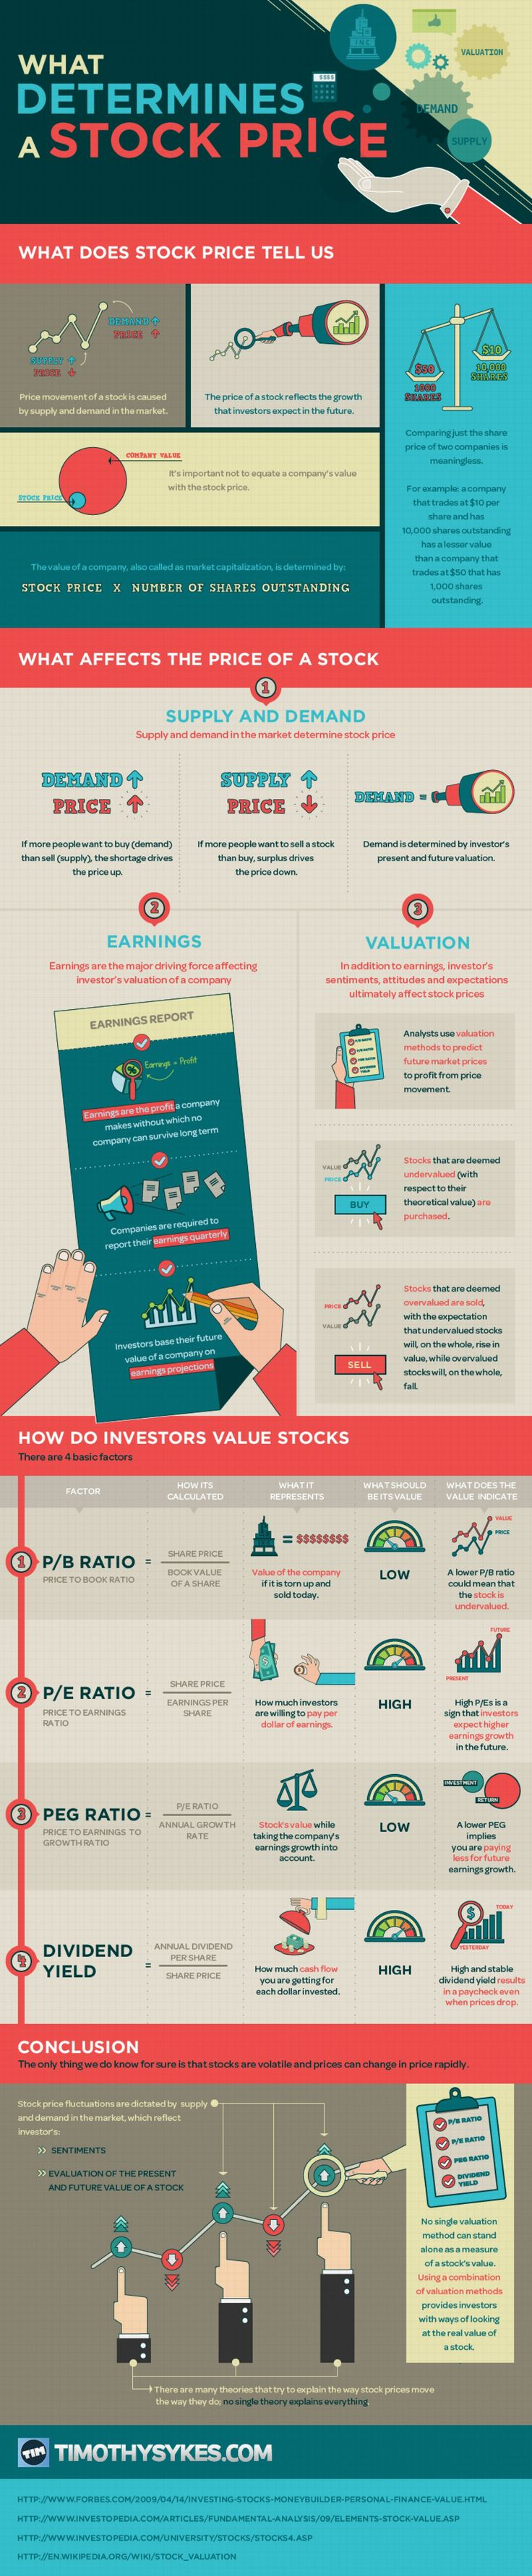 What Determines a Stock Price? Infographic                                                                                                                                                                                 More